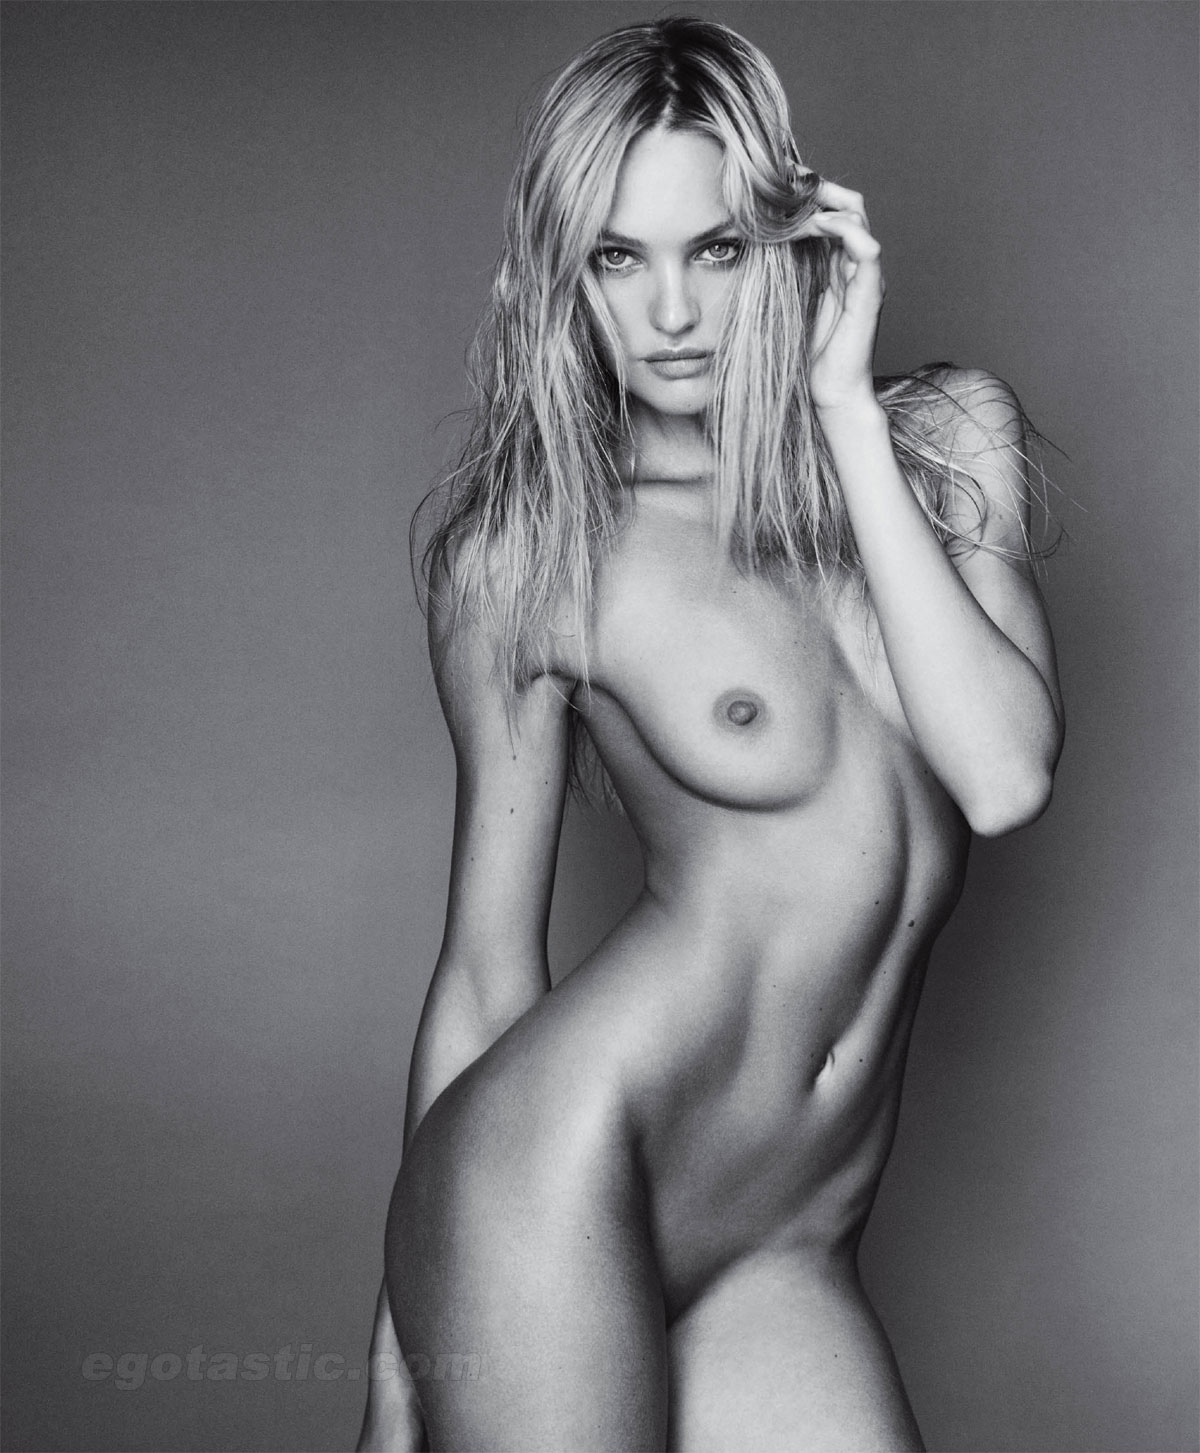 candice swanepoel nude v man mag 02 Charlotte Herbert and Friends Nude Front Pictures. 10 Jan 2011 at 19:01